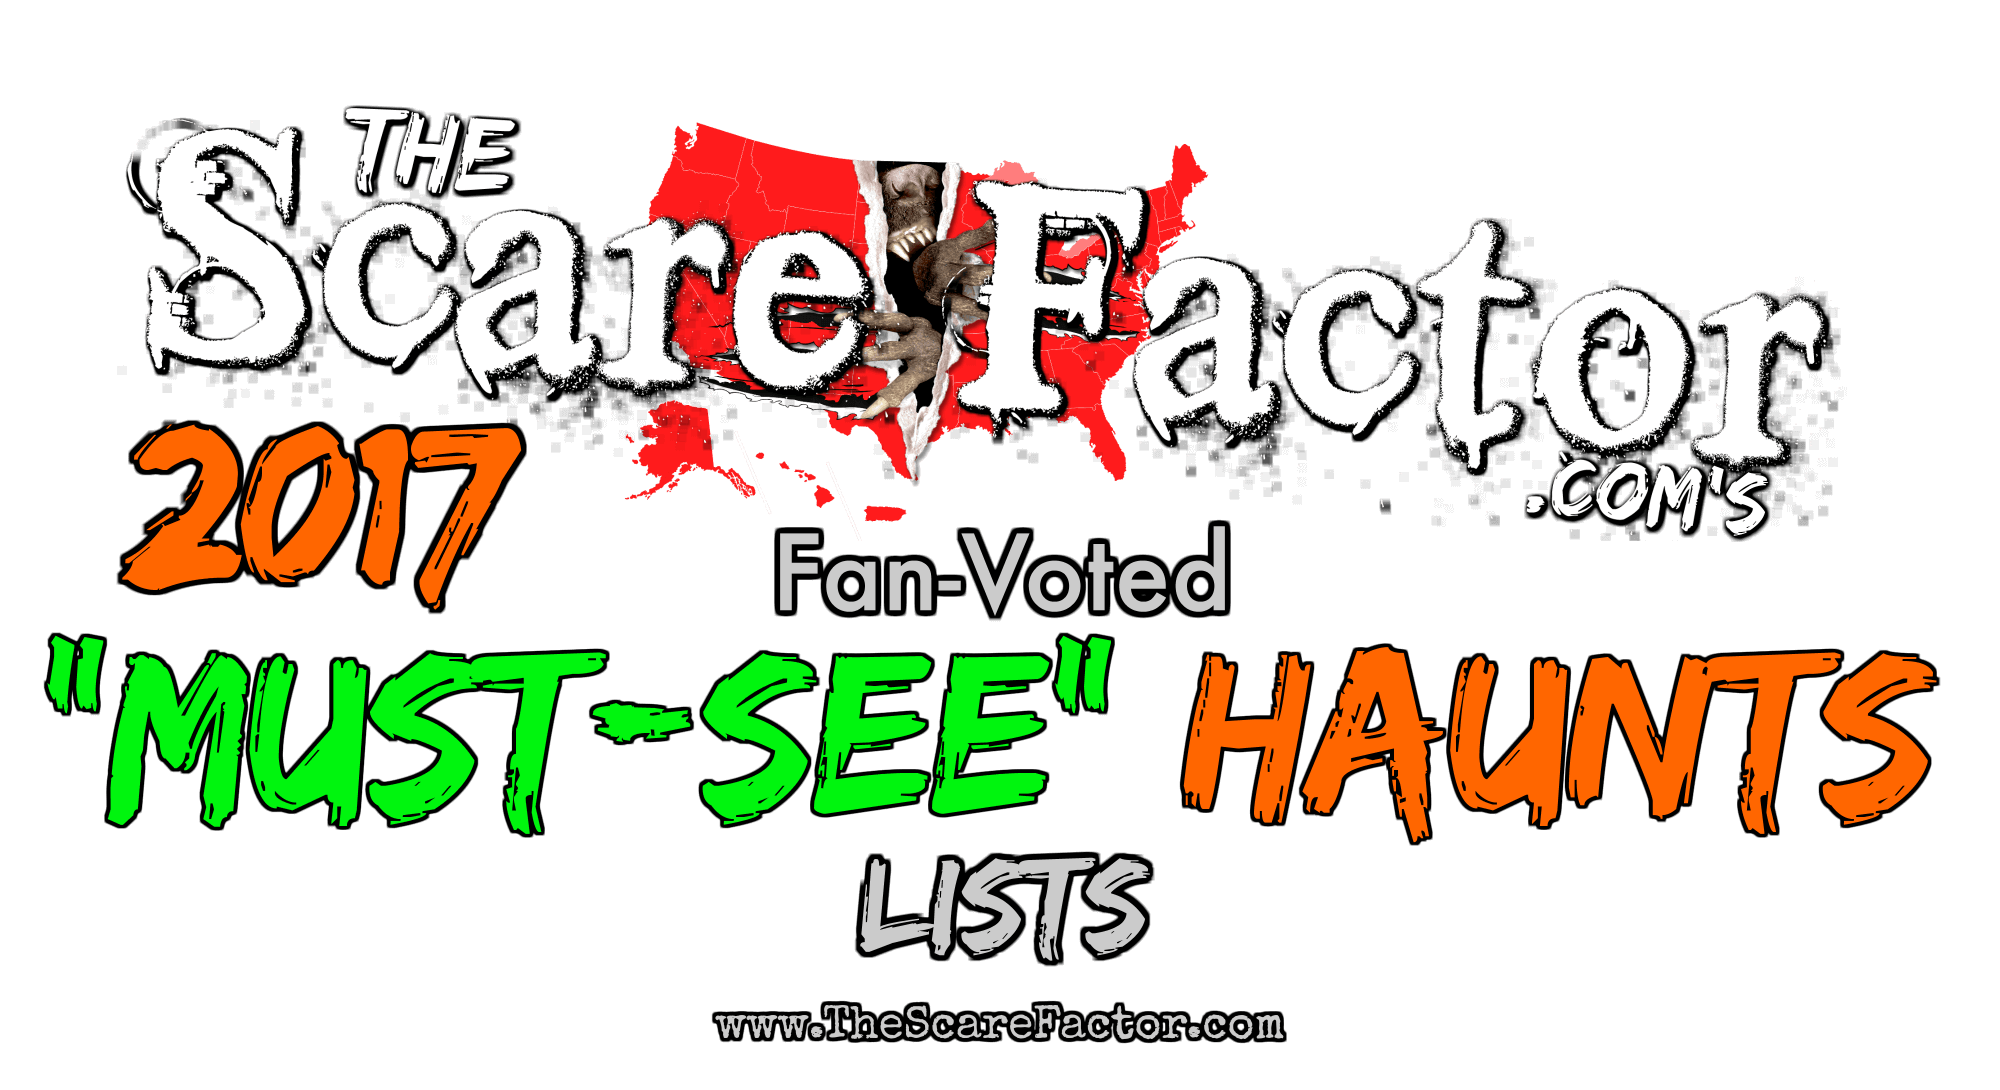 Top Pennsylvania Haunted Houses Lists